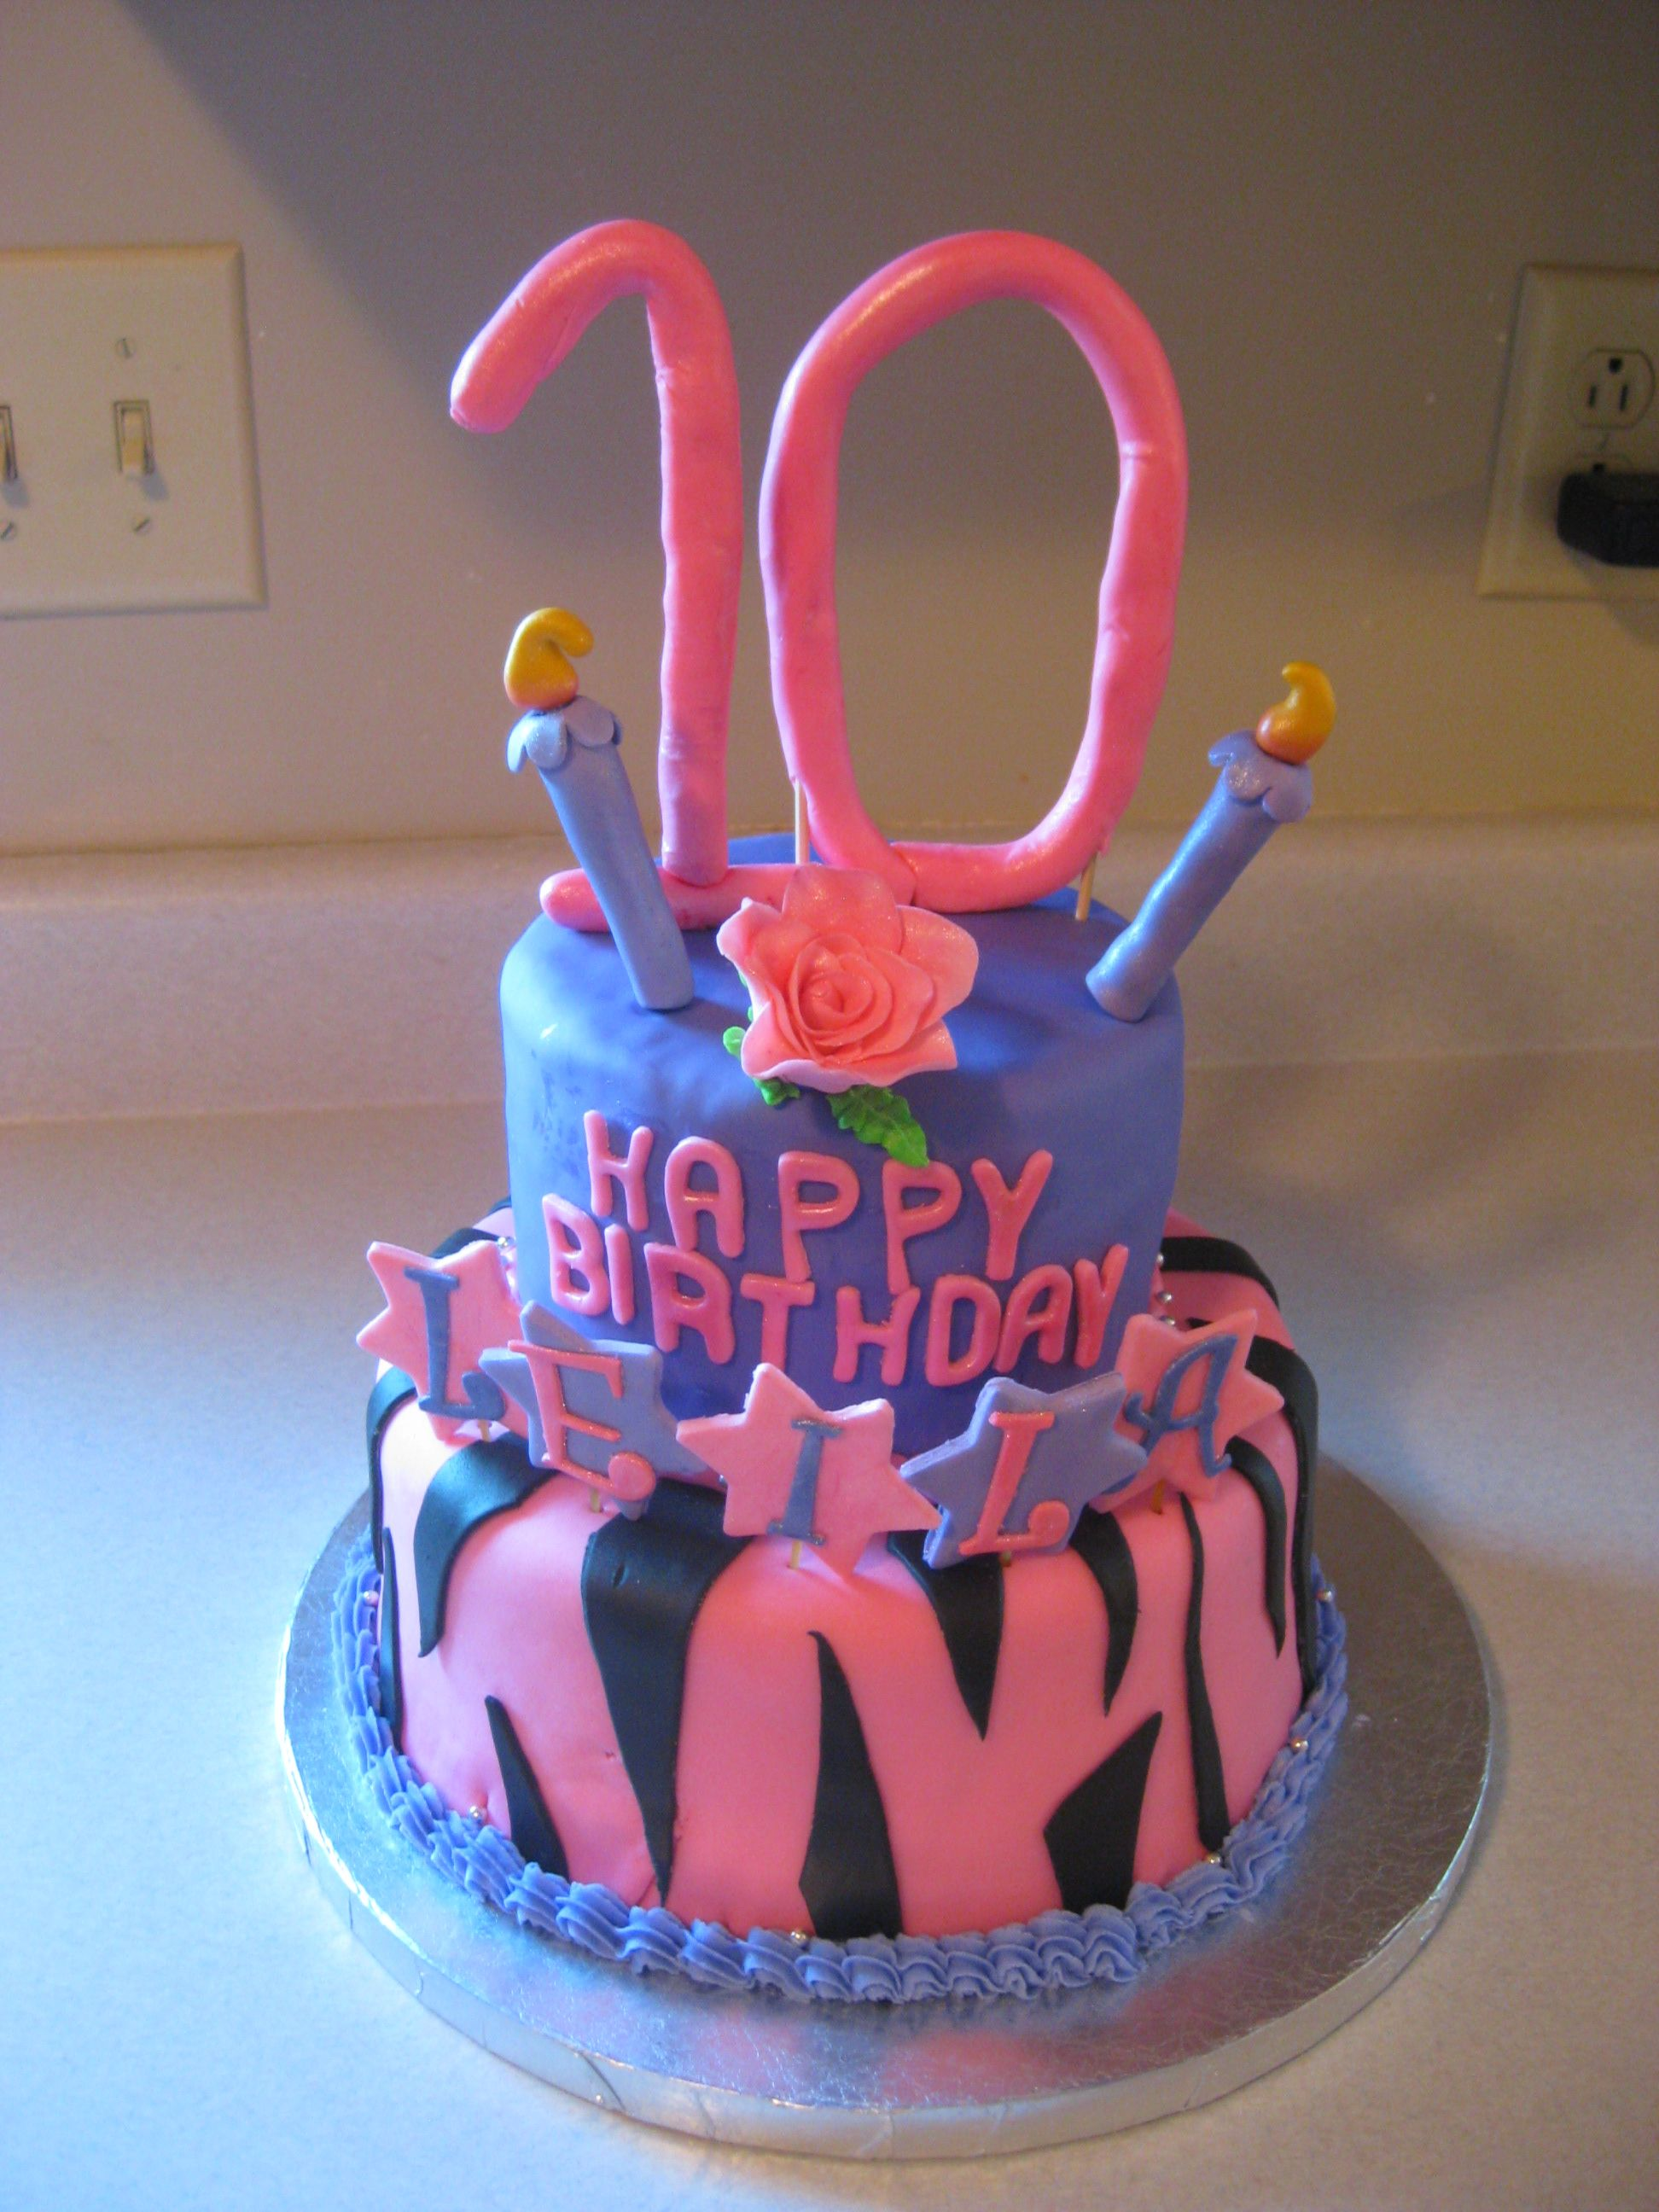 10 Year Old S Birthday Cake Types Of Birthday Cakes Cool